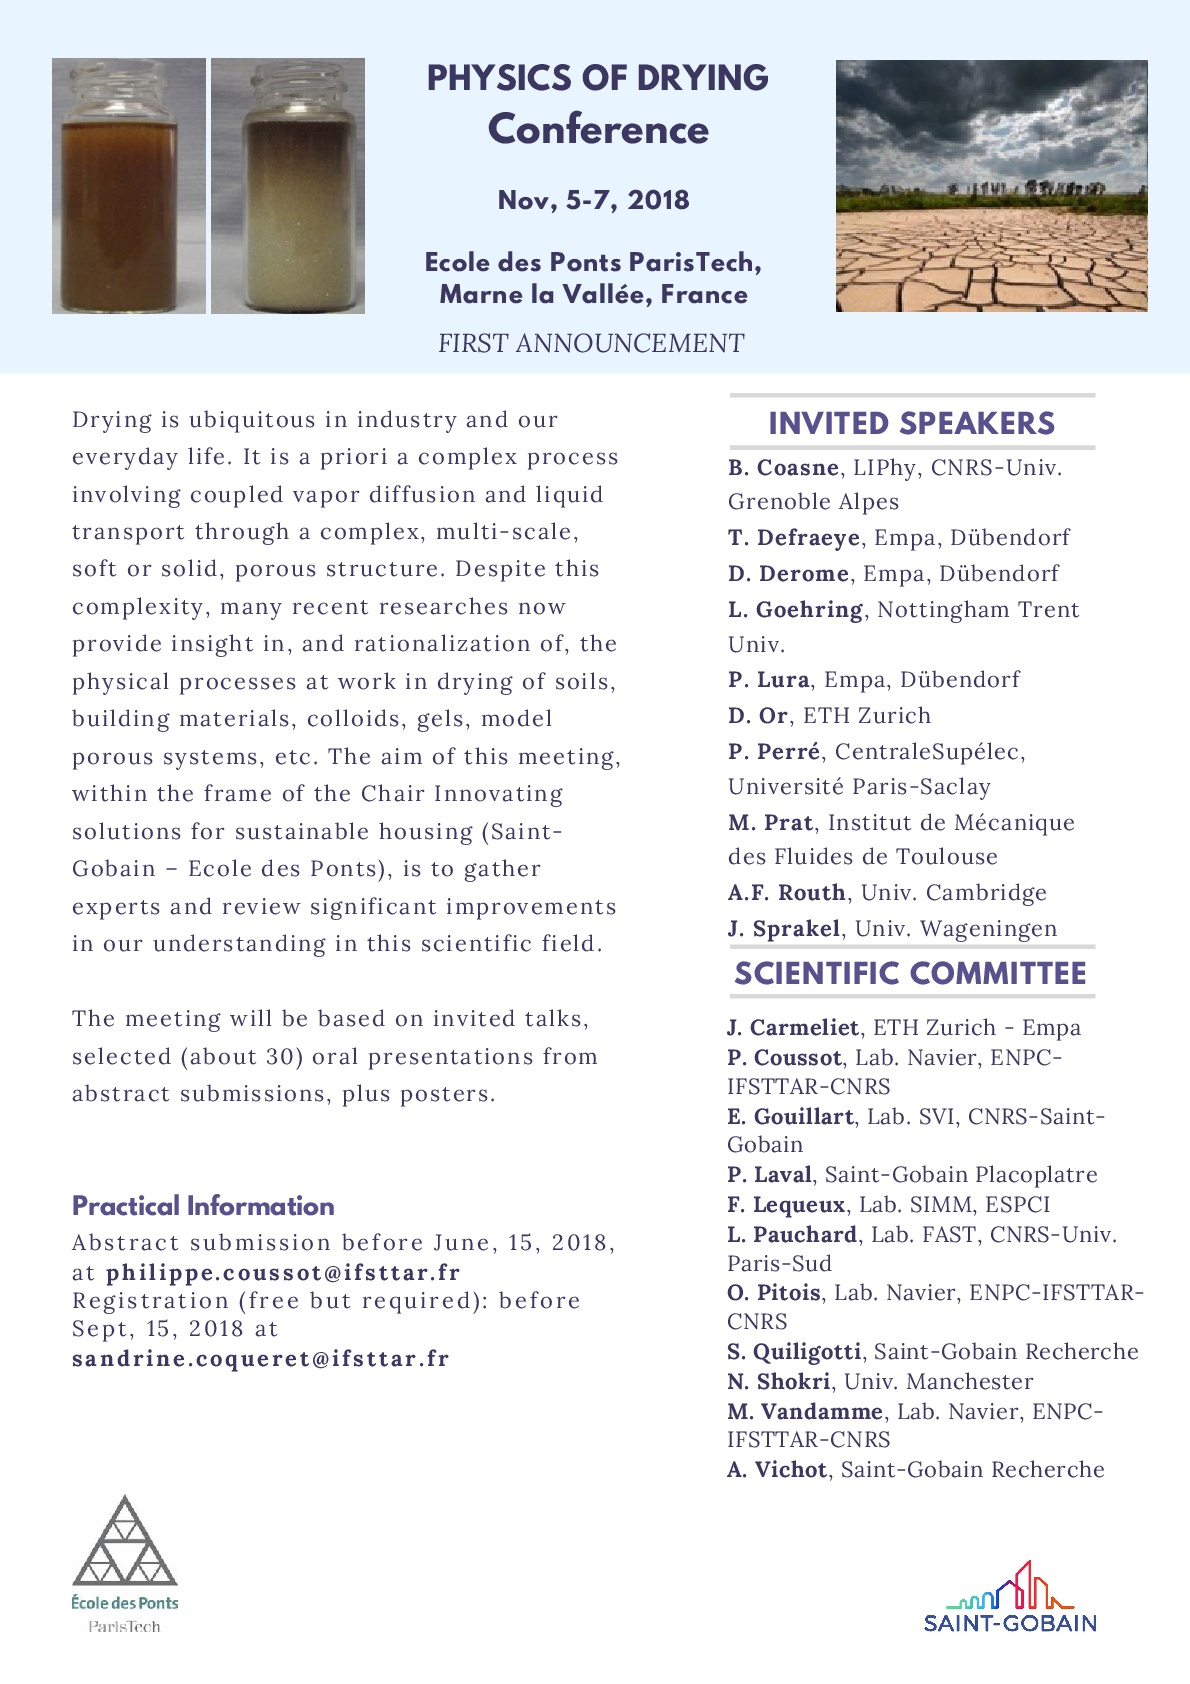 Physics of drying conference, Nov. 5-7, 2018